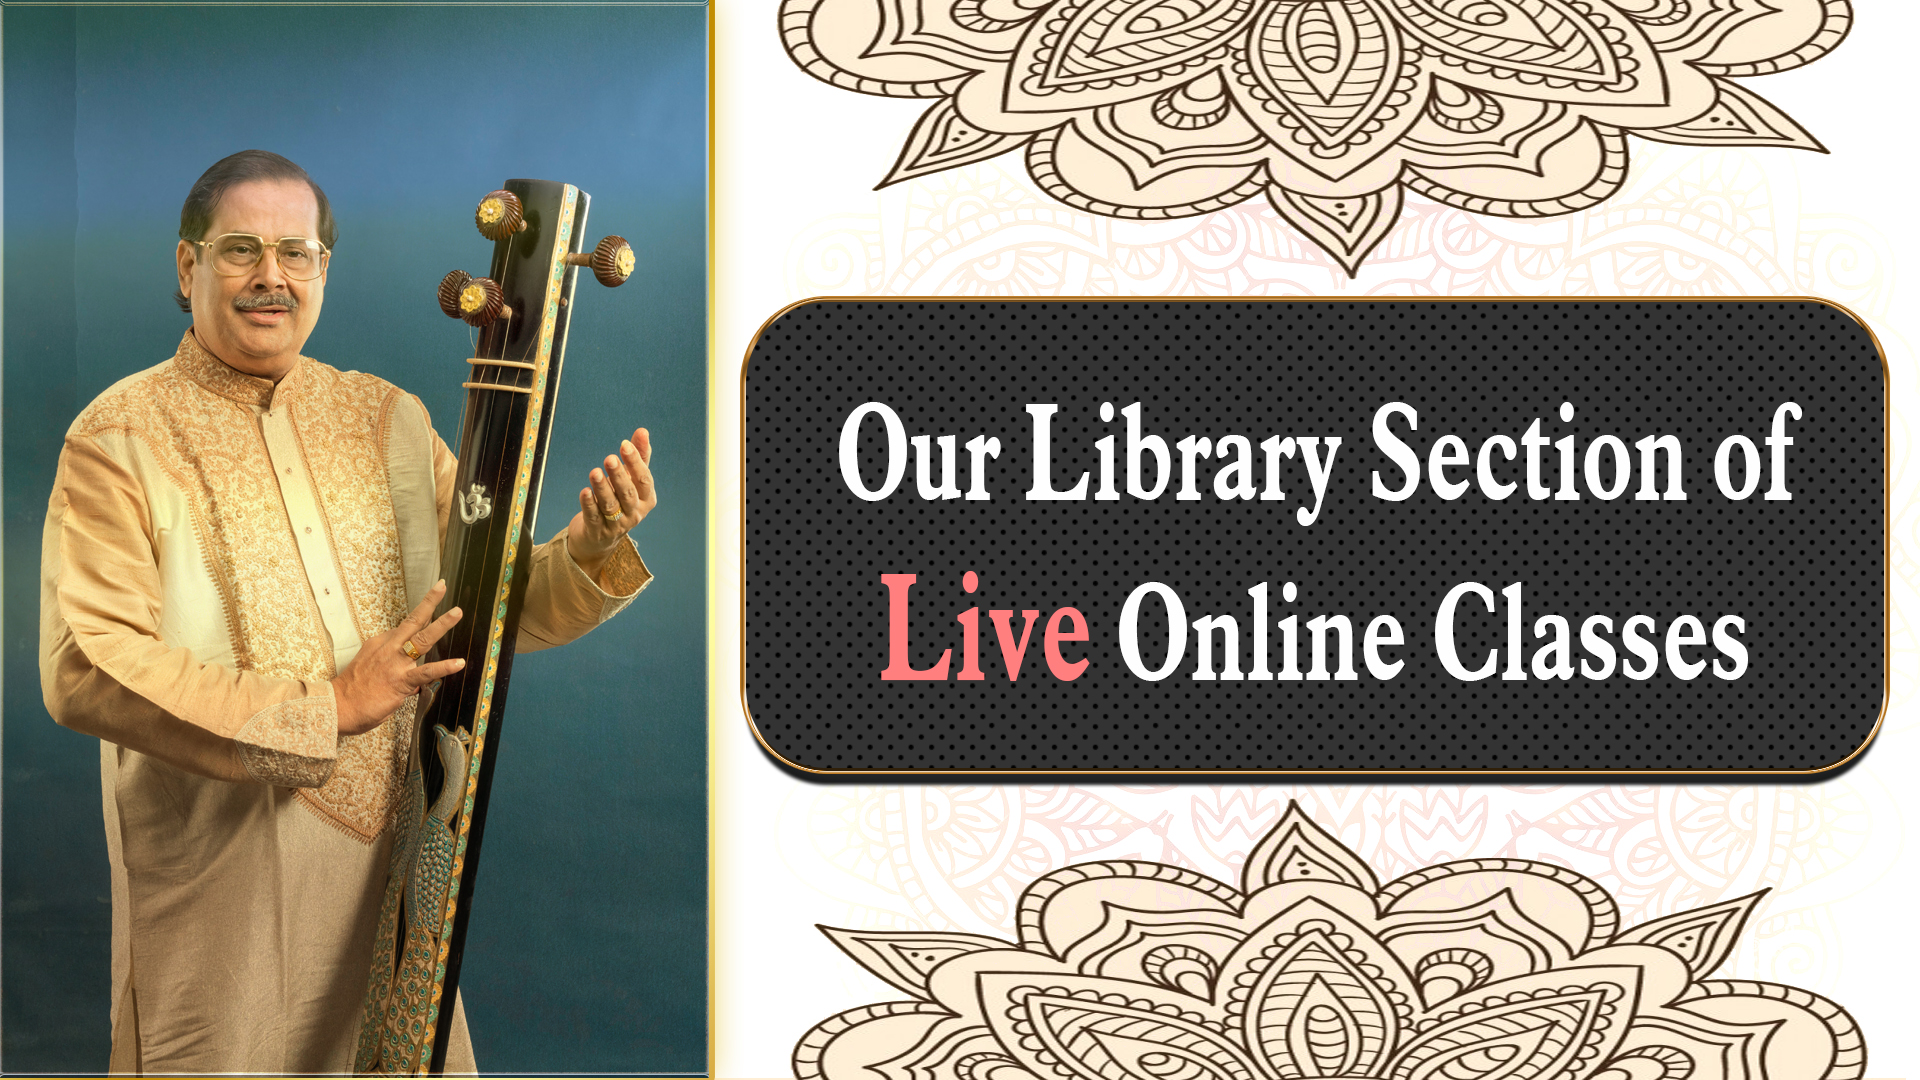 Our Library Section of Live Online Classes